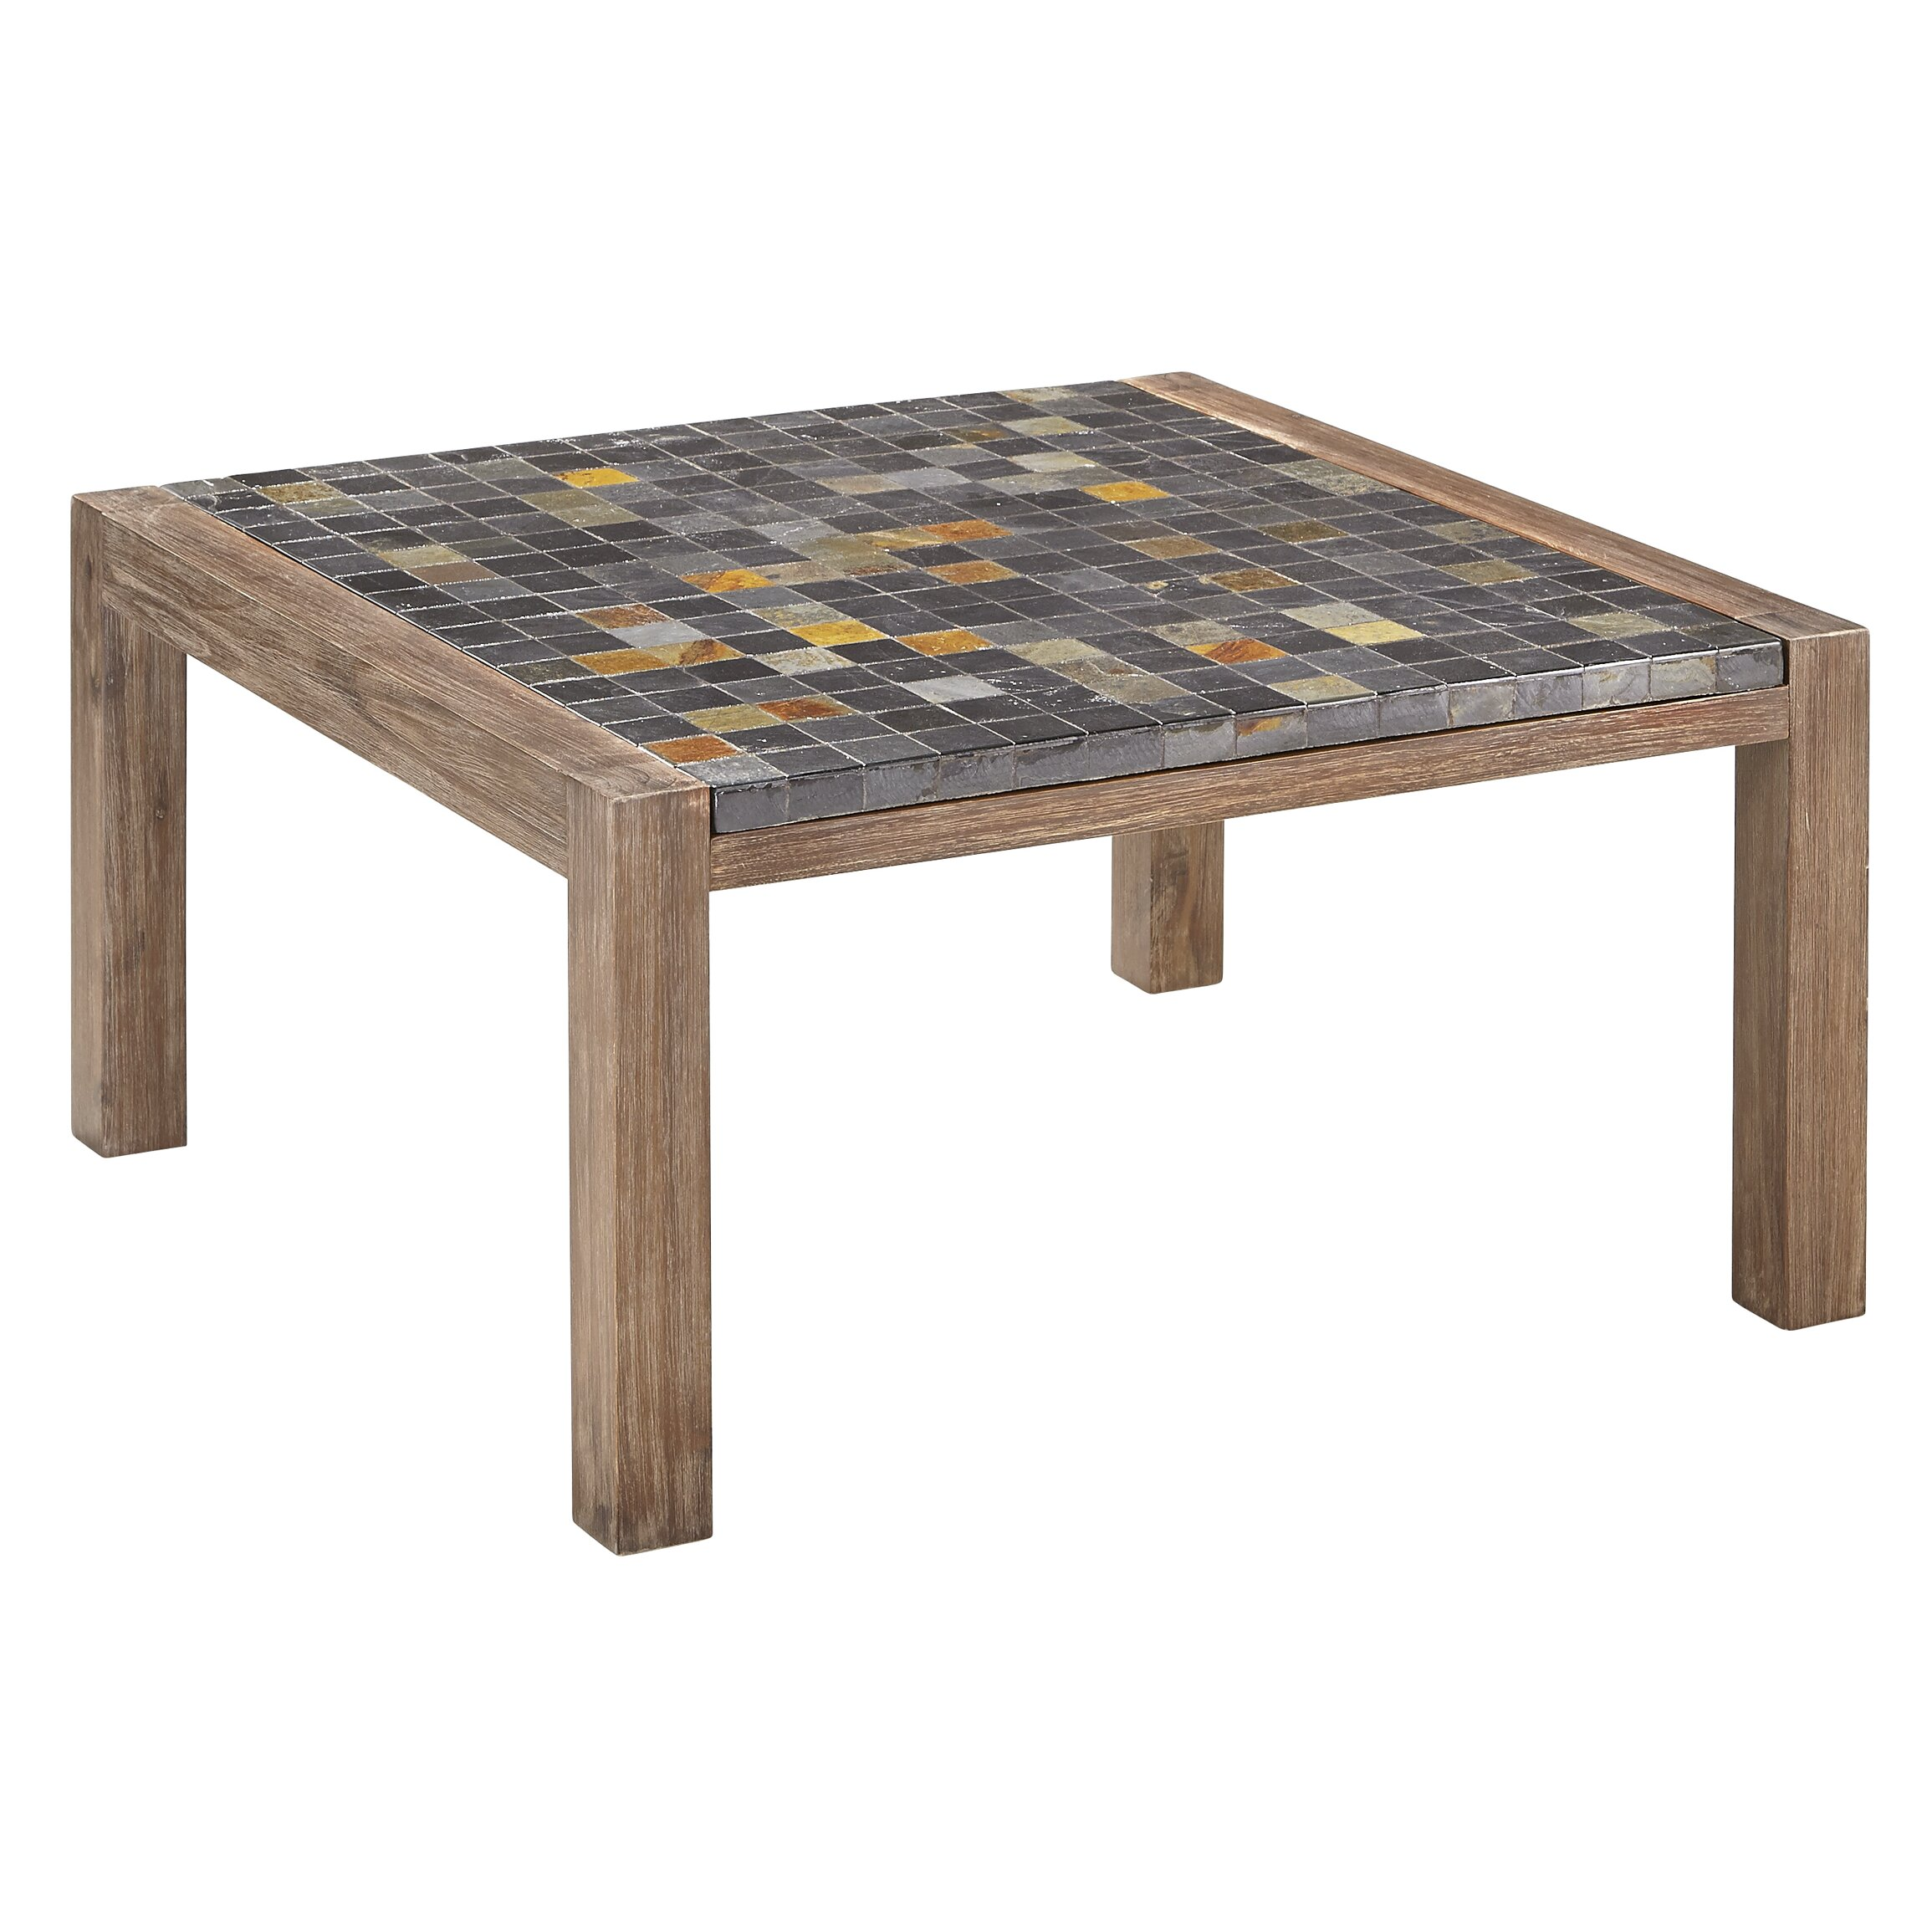 Home styles morocco coffee table reviews wayfair for Html table style